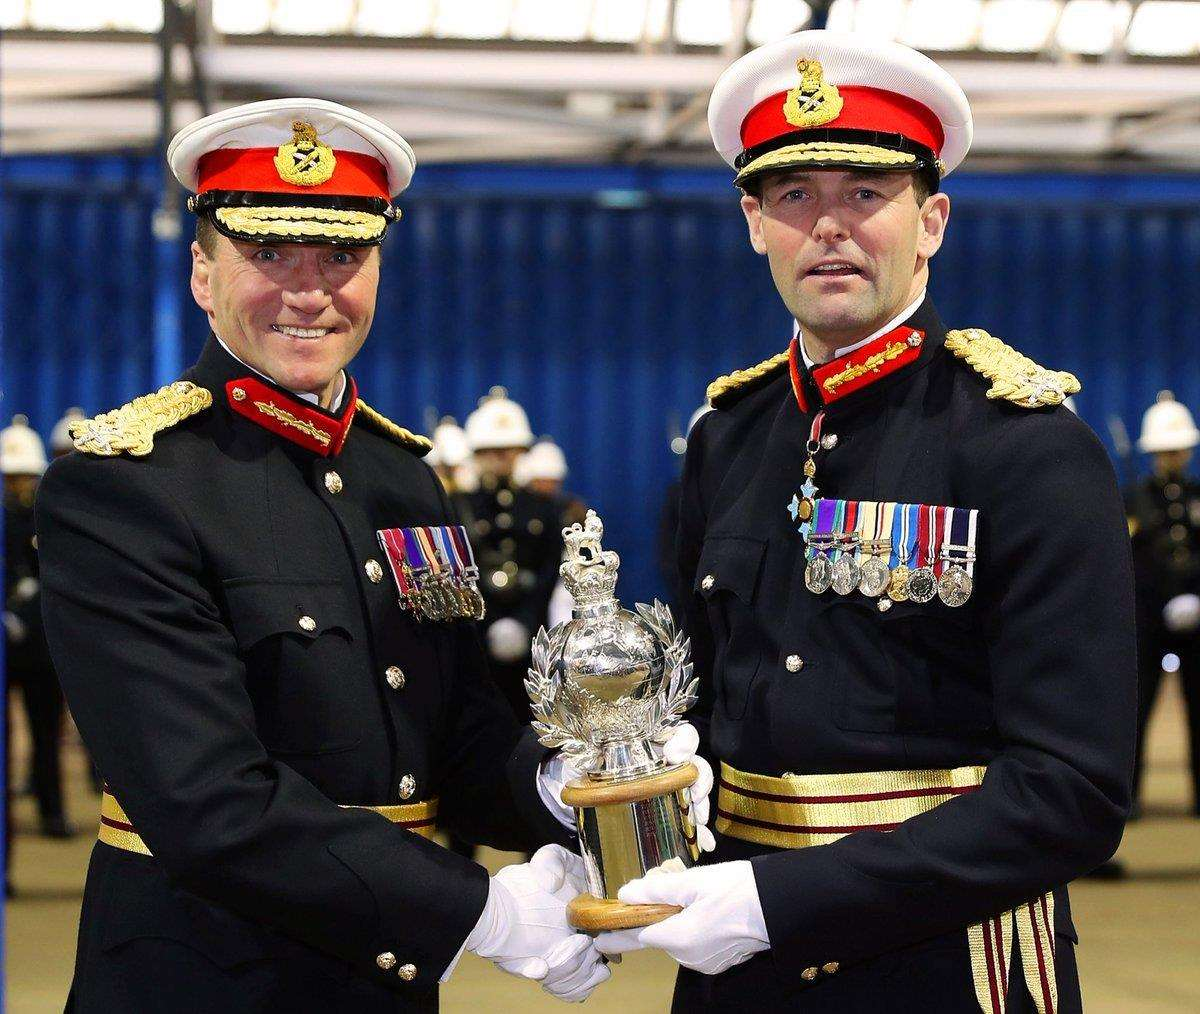 The Commandant General Royal Marines, Major General Rob Magowan CBE (right) was the Royal Marines Heritage Trails first Patron and he has recently been succeeded by Major General Charles Stickland OBE (left) (1435786)